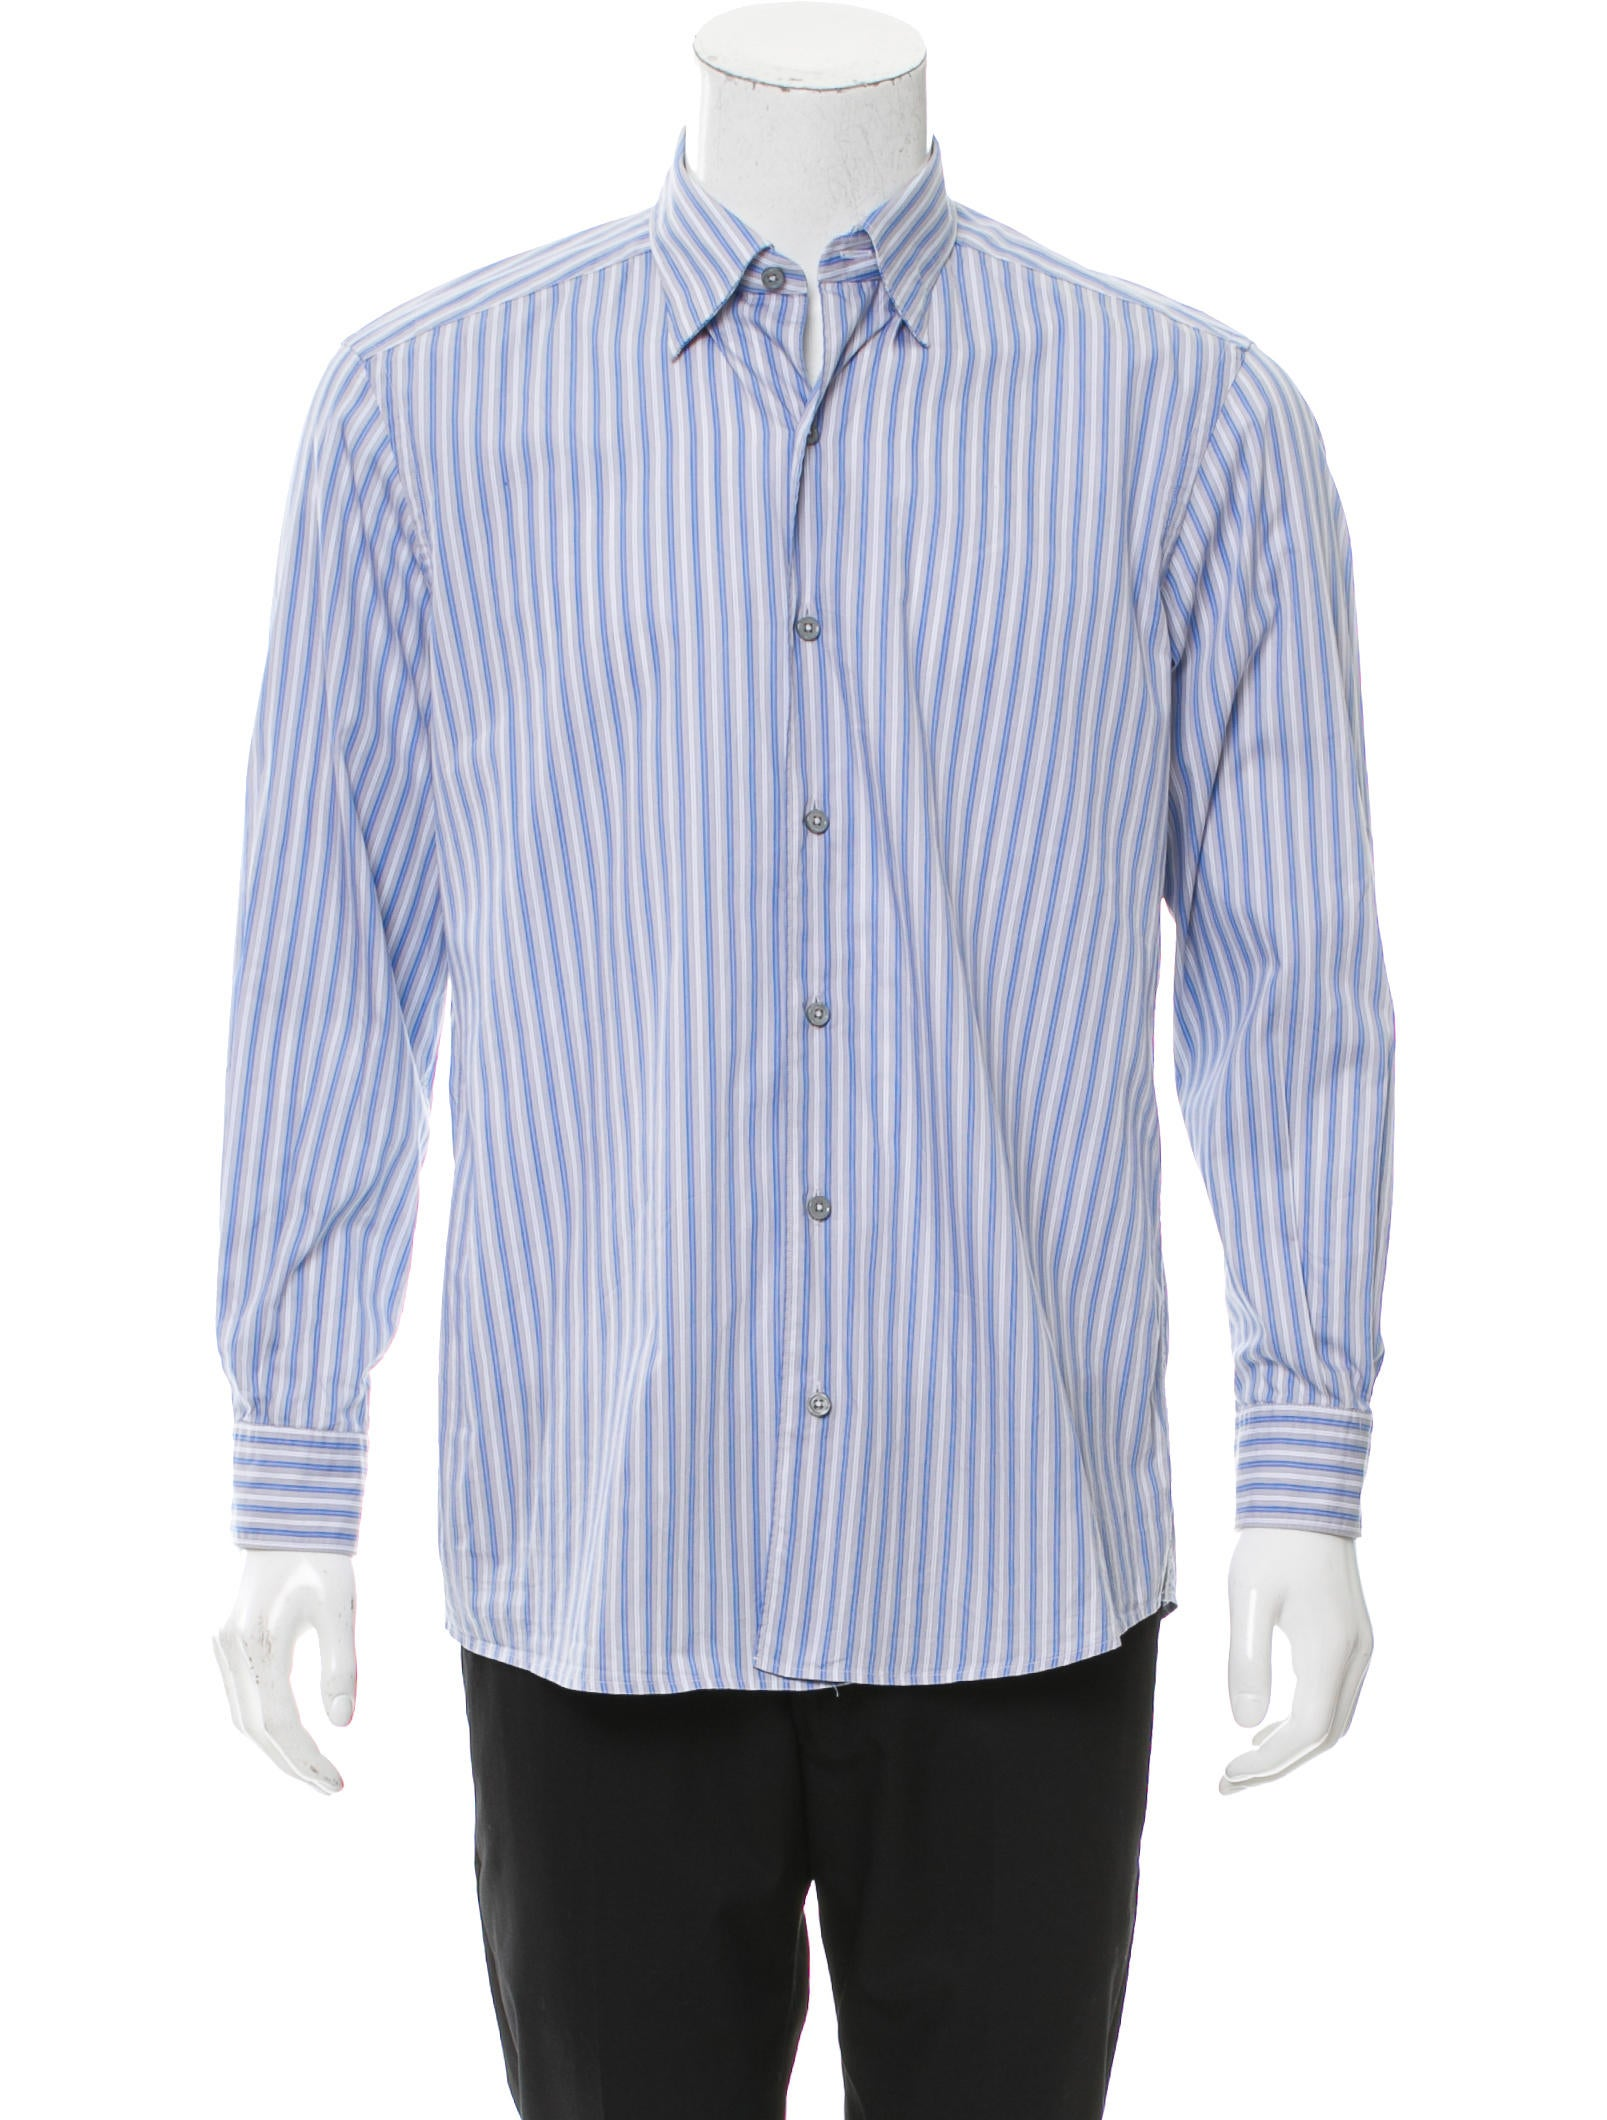 ermenegildo zegna striped button up shirt clothing